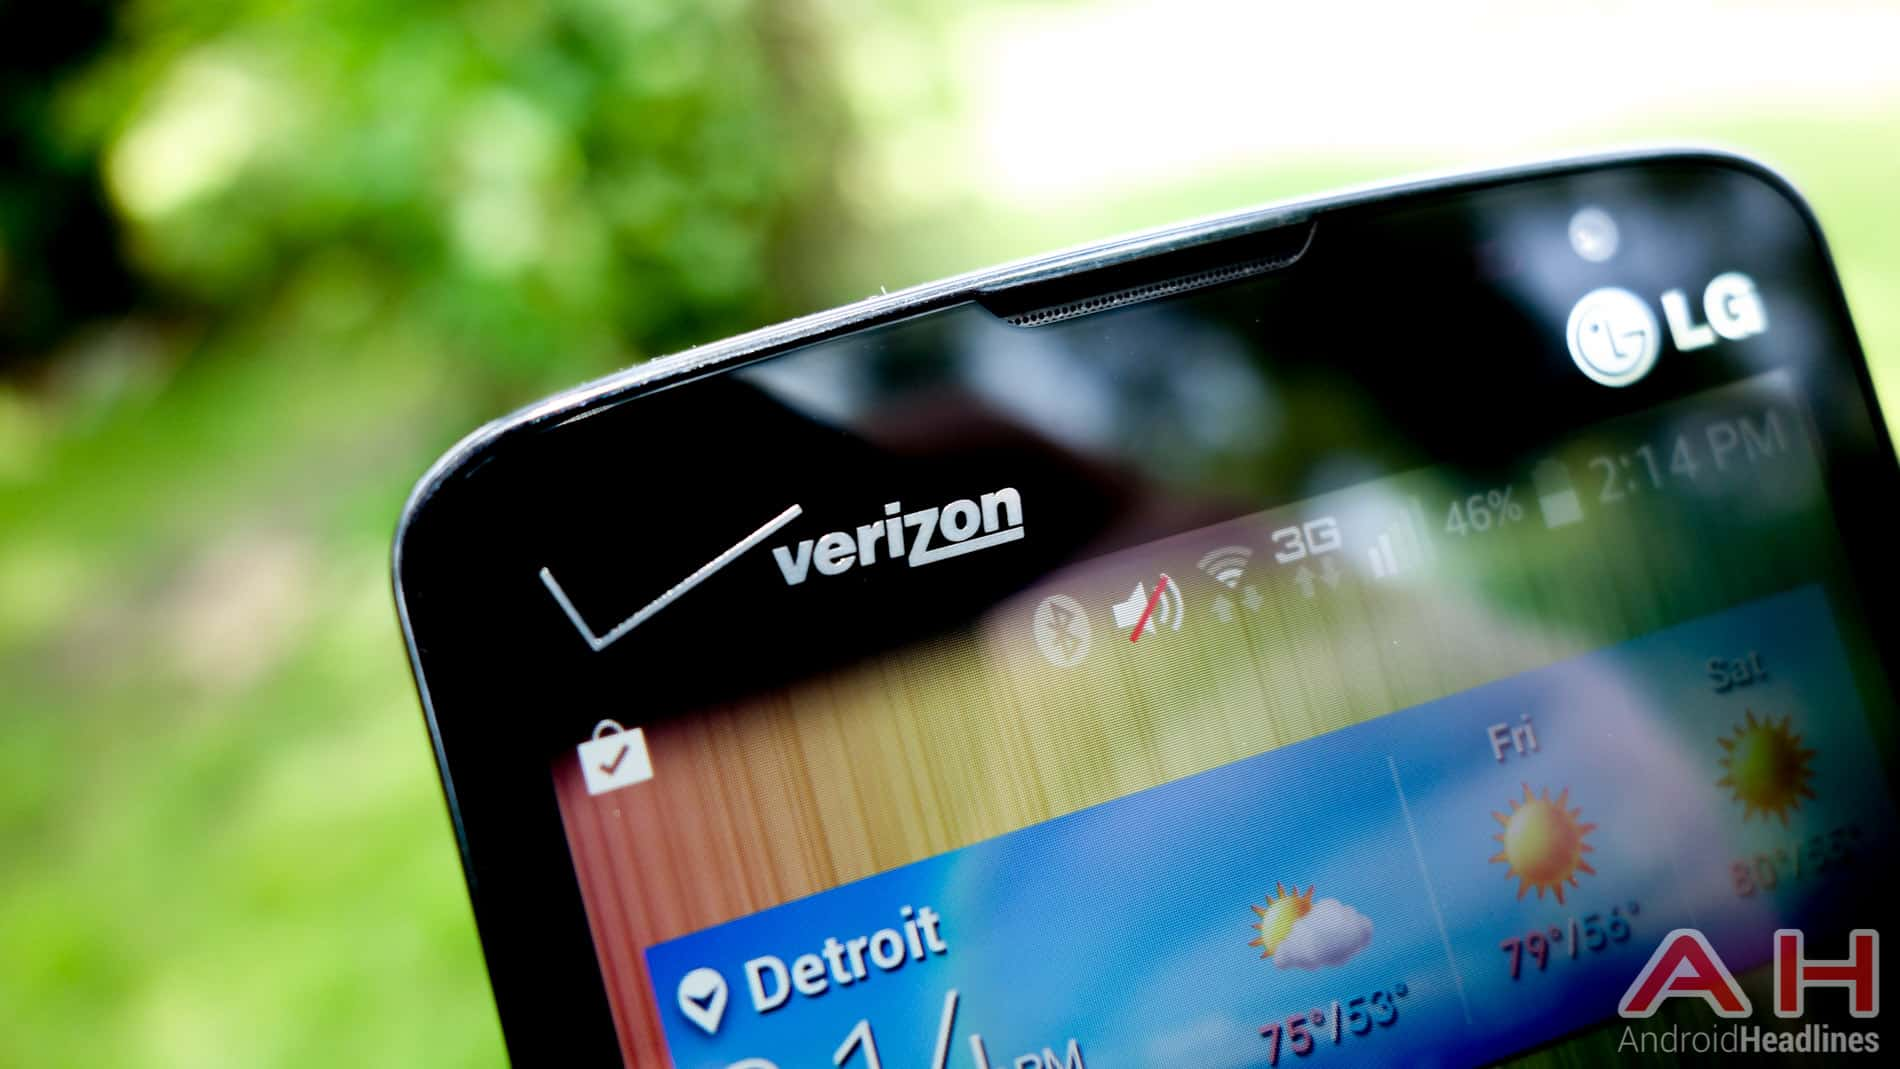 Verizon Responds to Poor 911 Location Accuracy Allegations